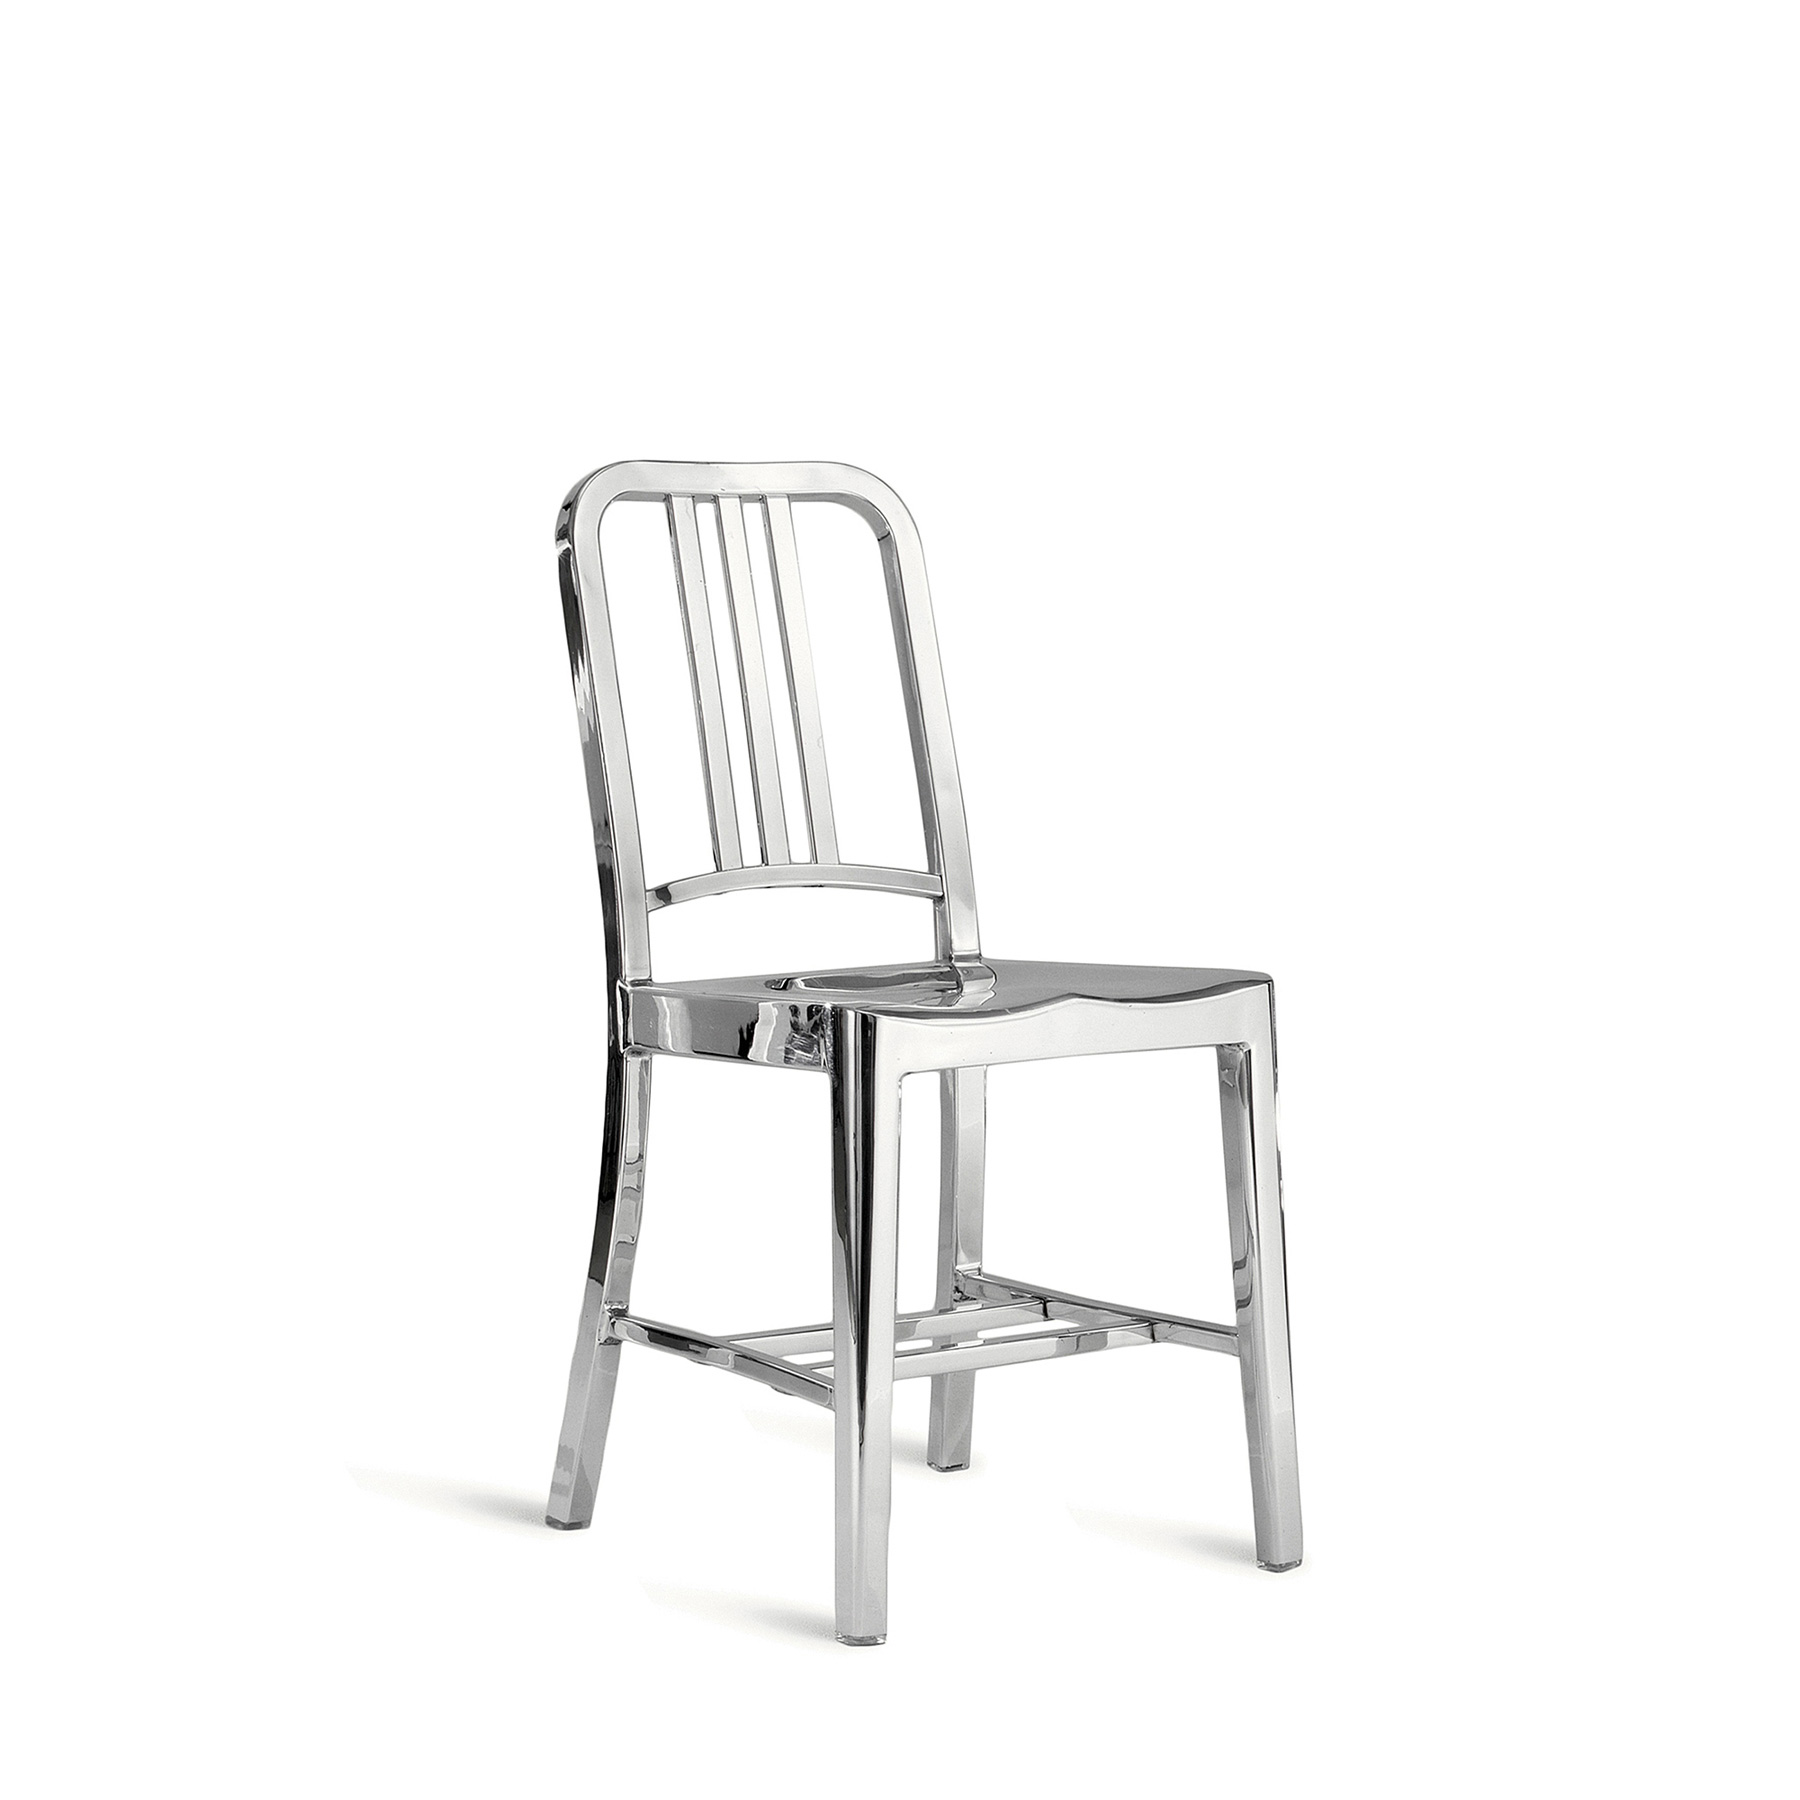 1006 Navy Chair Recycled Aluminium Made to Order by Hand